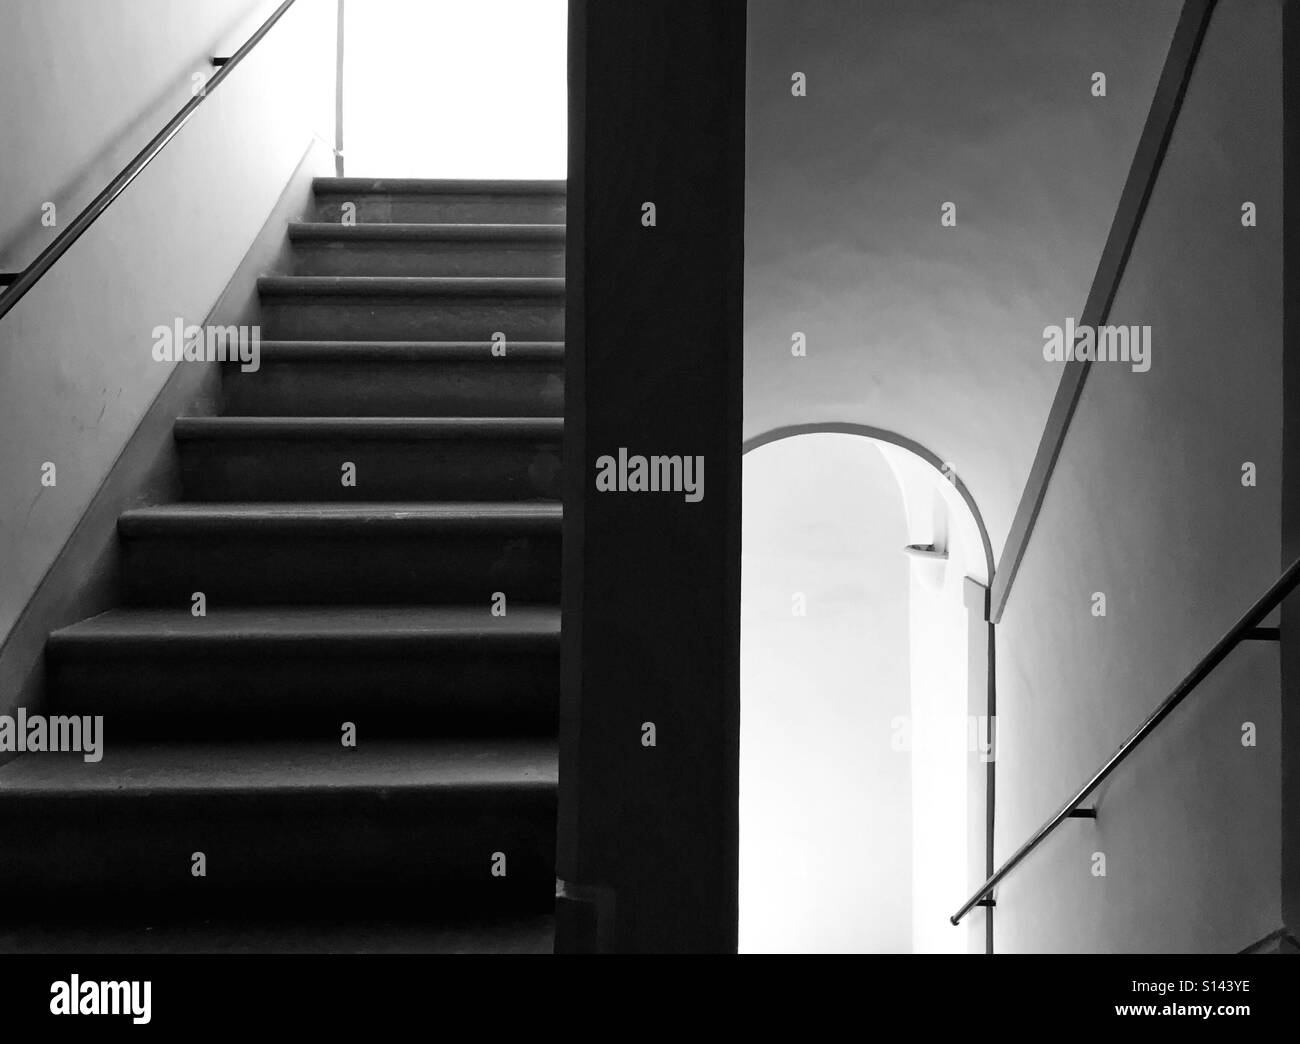 Ascending stairways in Black and white - Stock Image